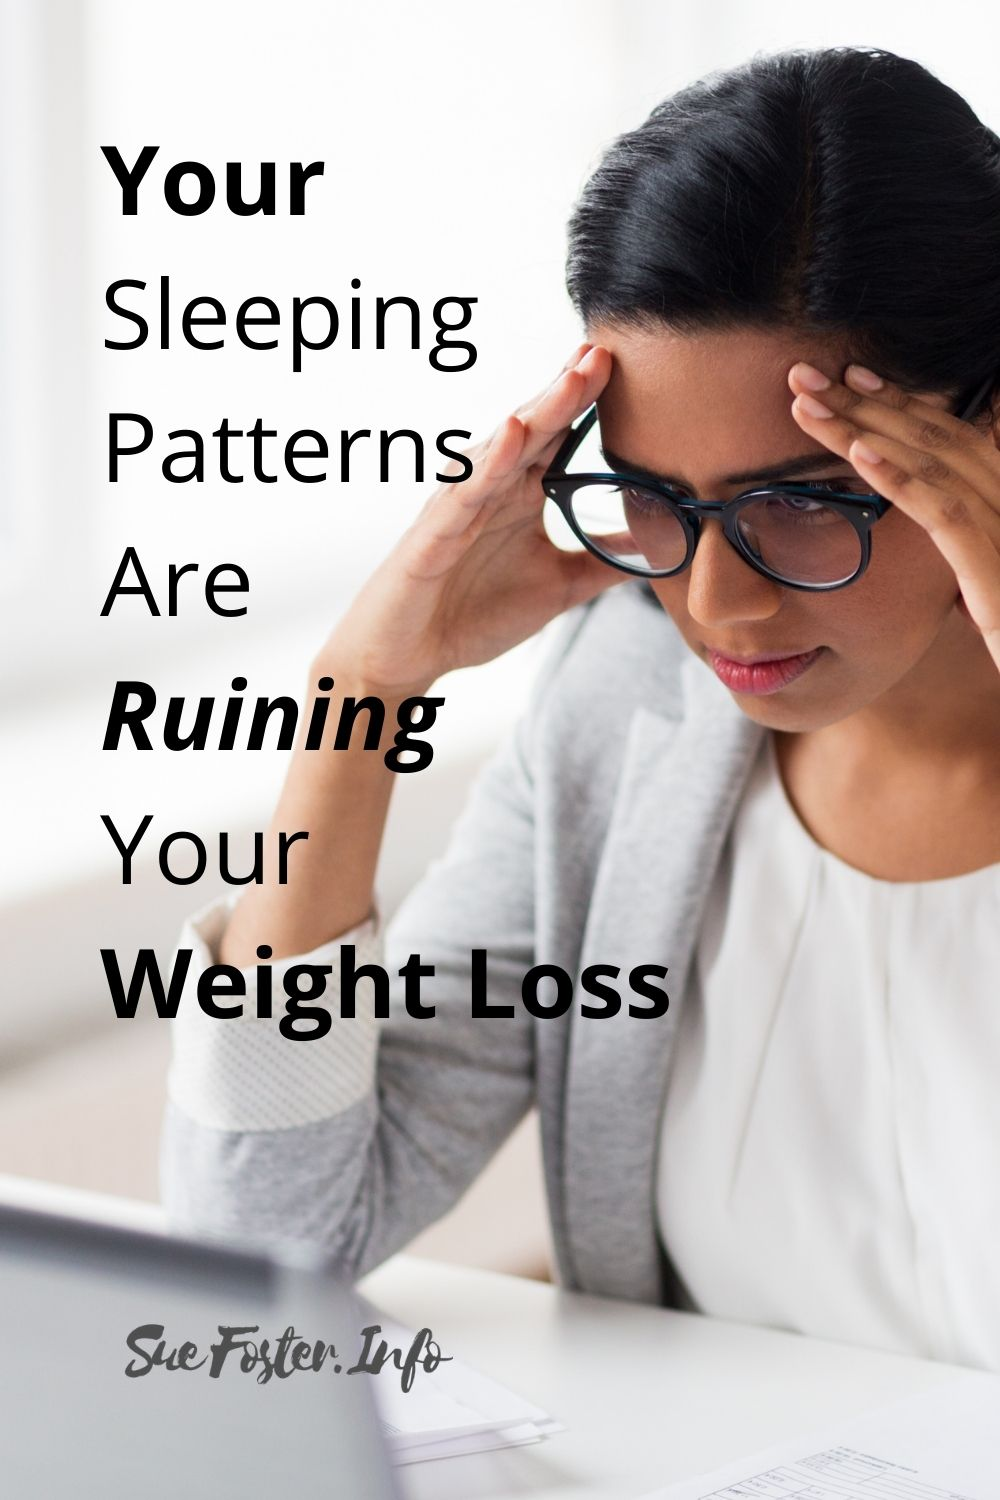 Your Sleeping Patterns Are Ruining Your Weight Loss